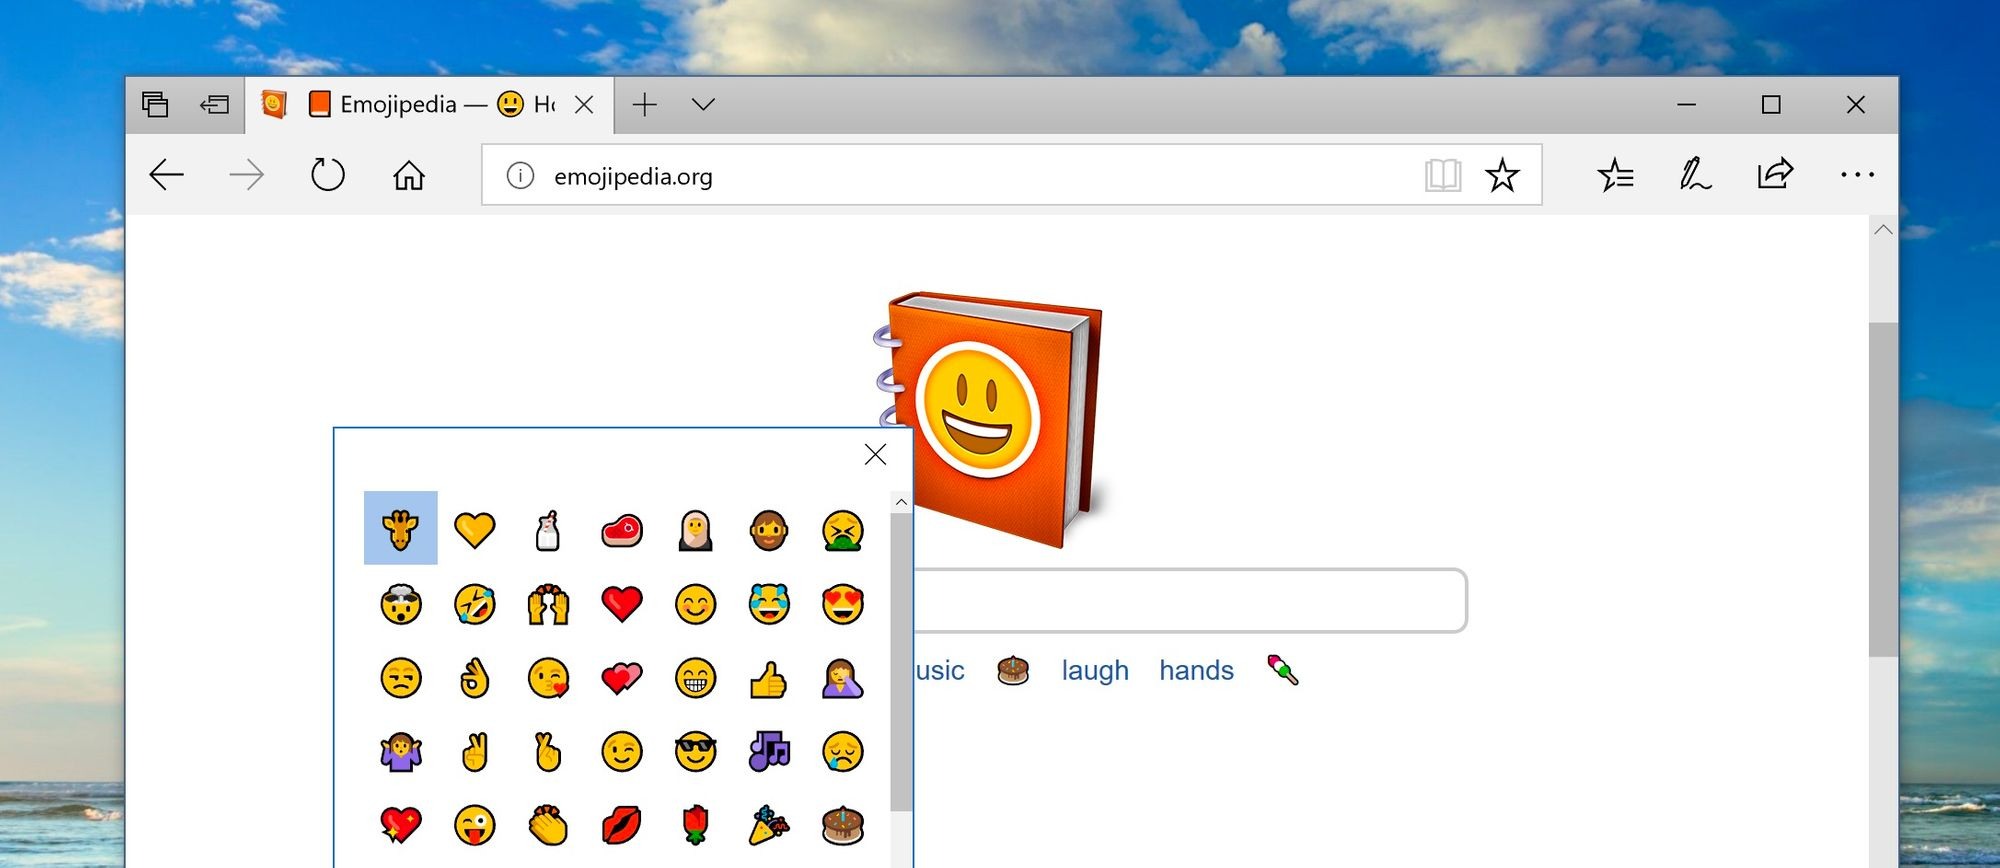 How To Use The New Windows Emoji Picker